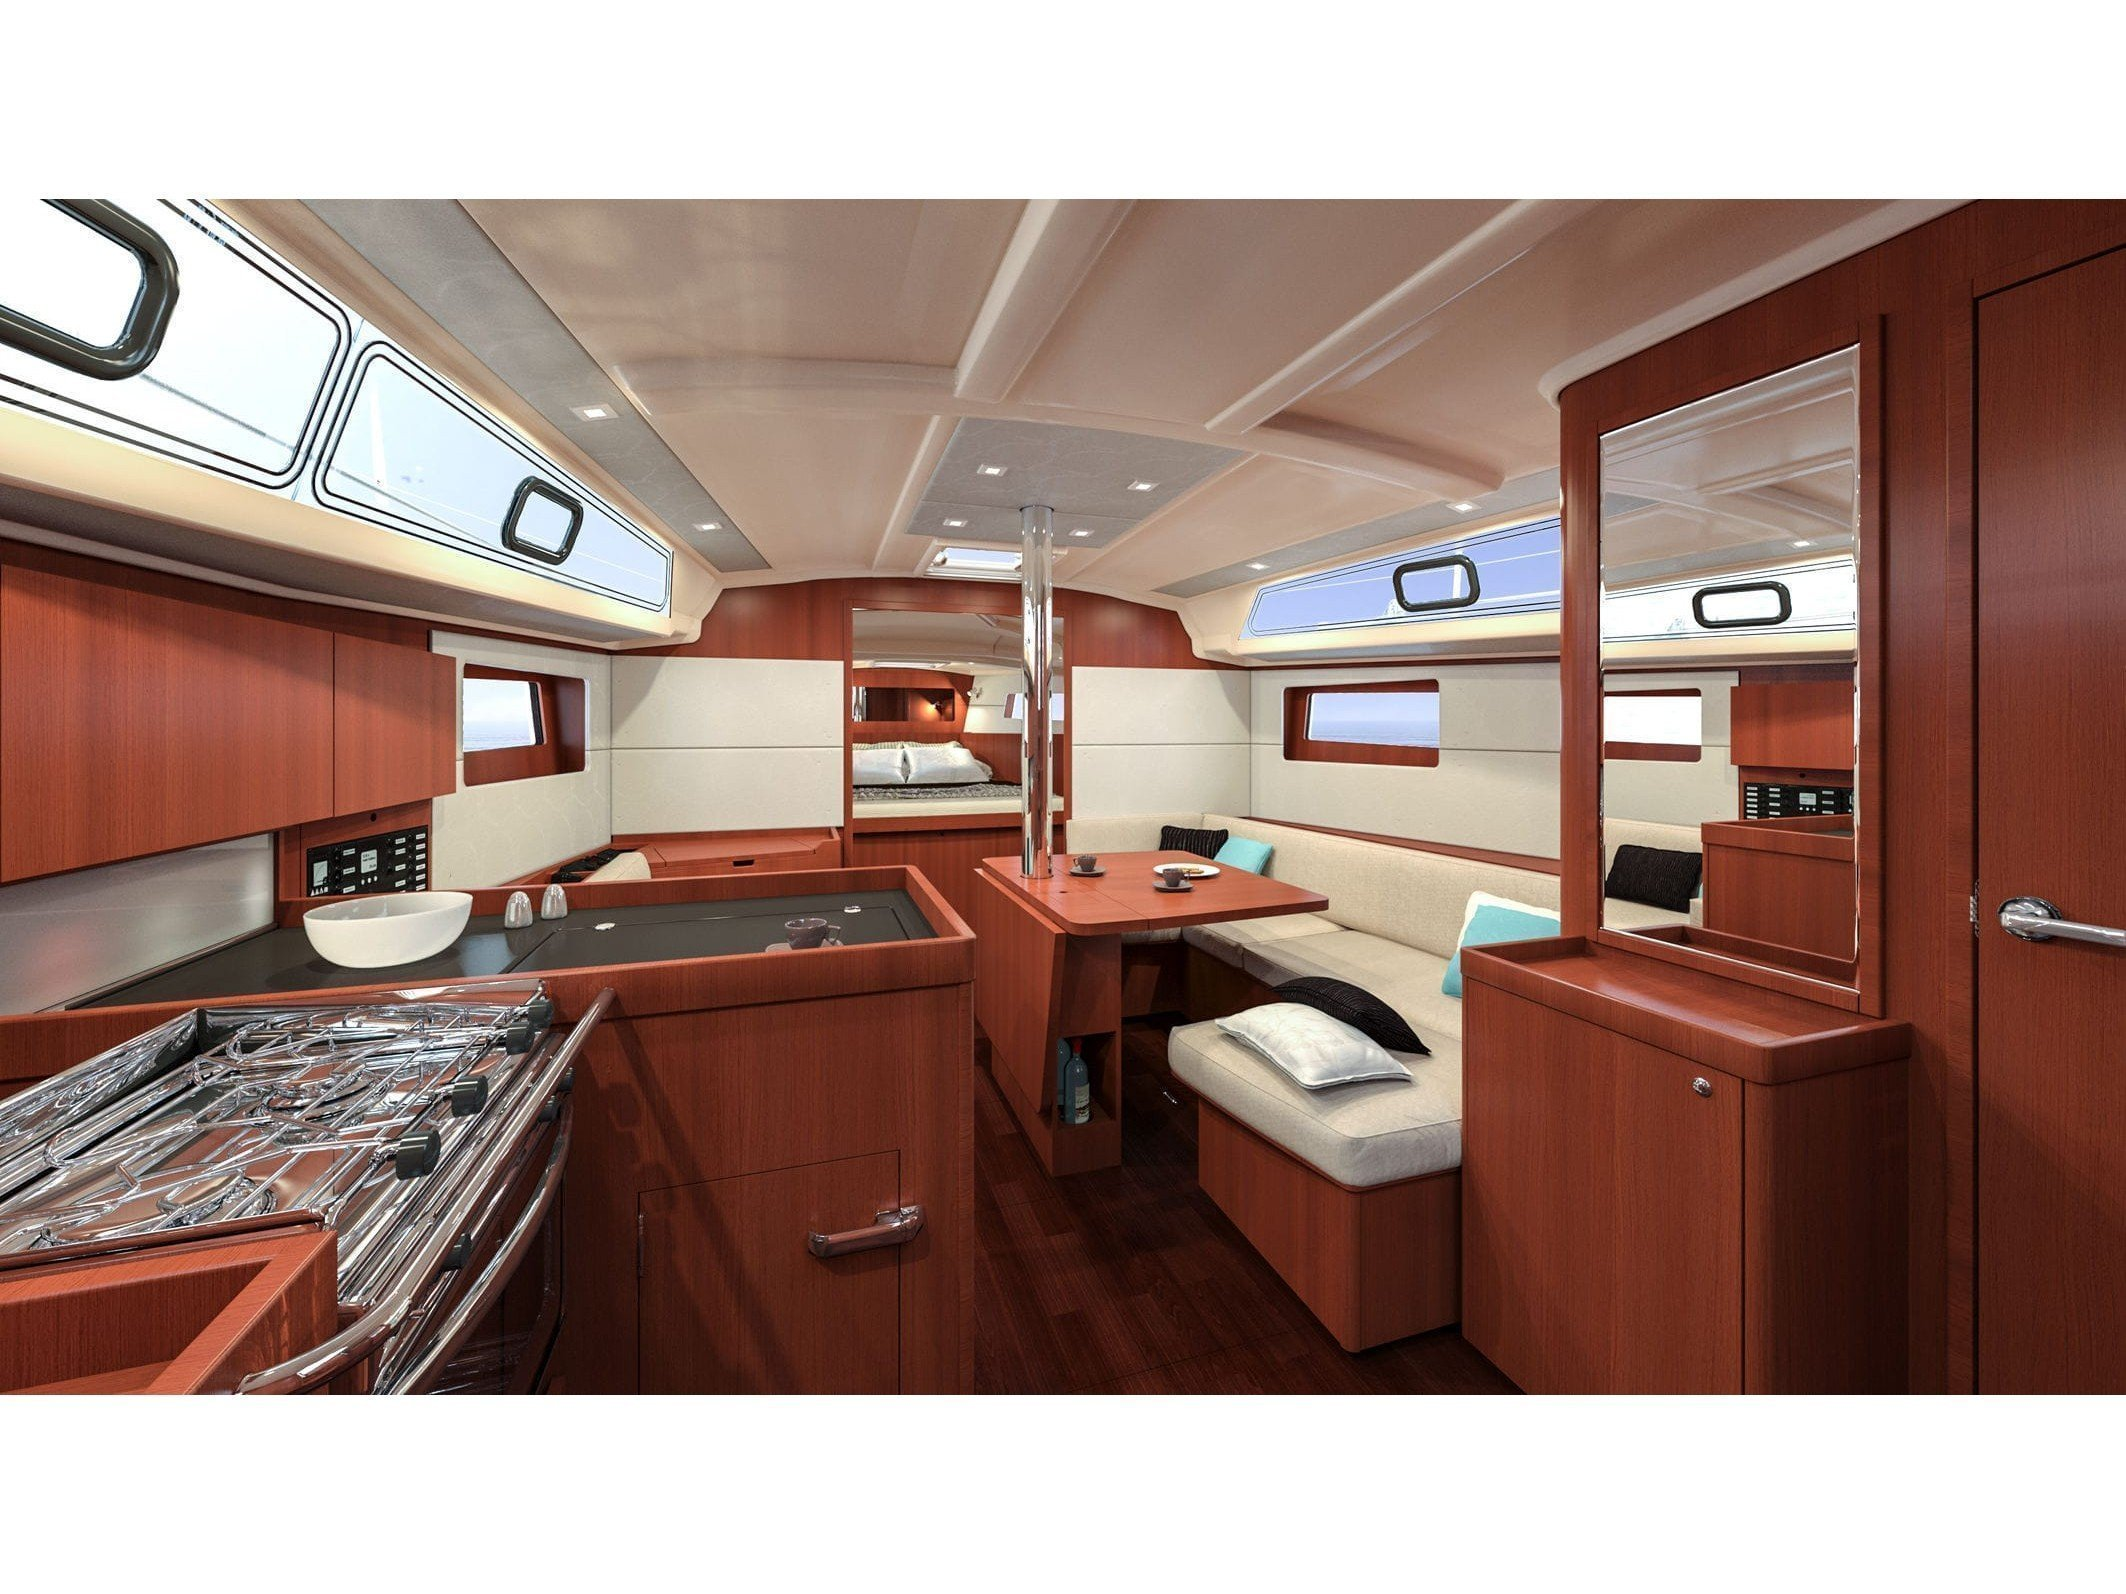 Oceanis 41.1 (WHITE BIRD) Interior image - 10